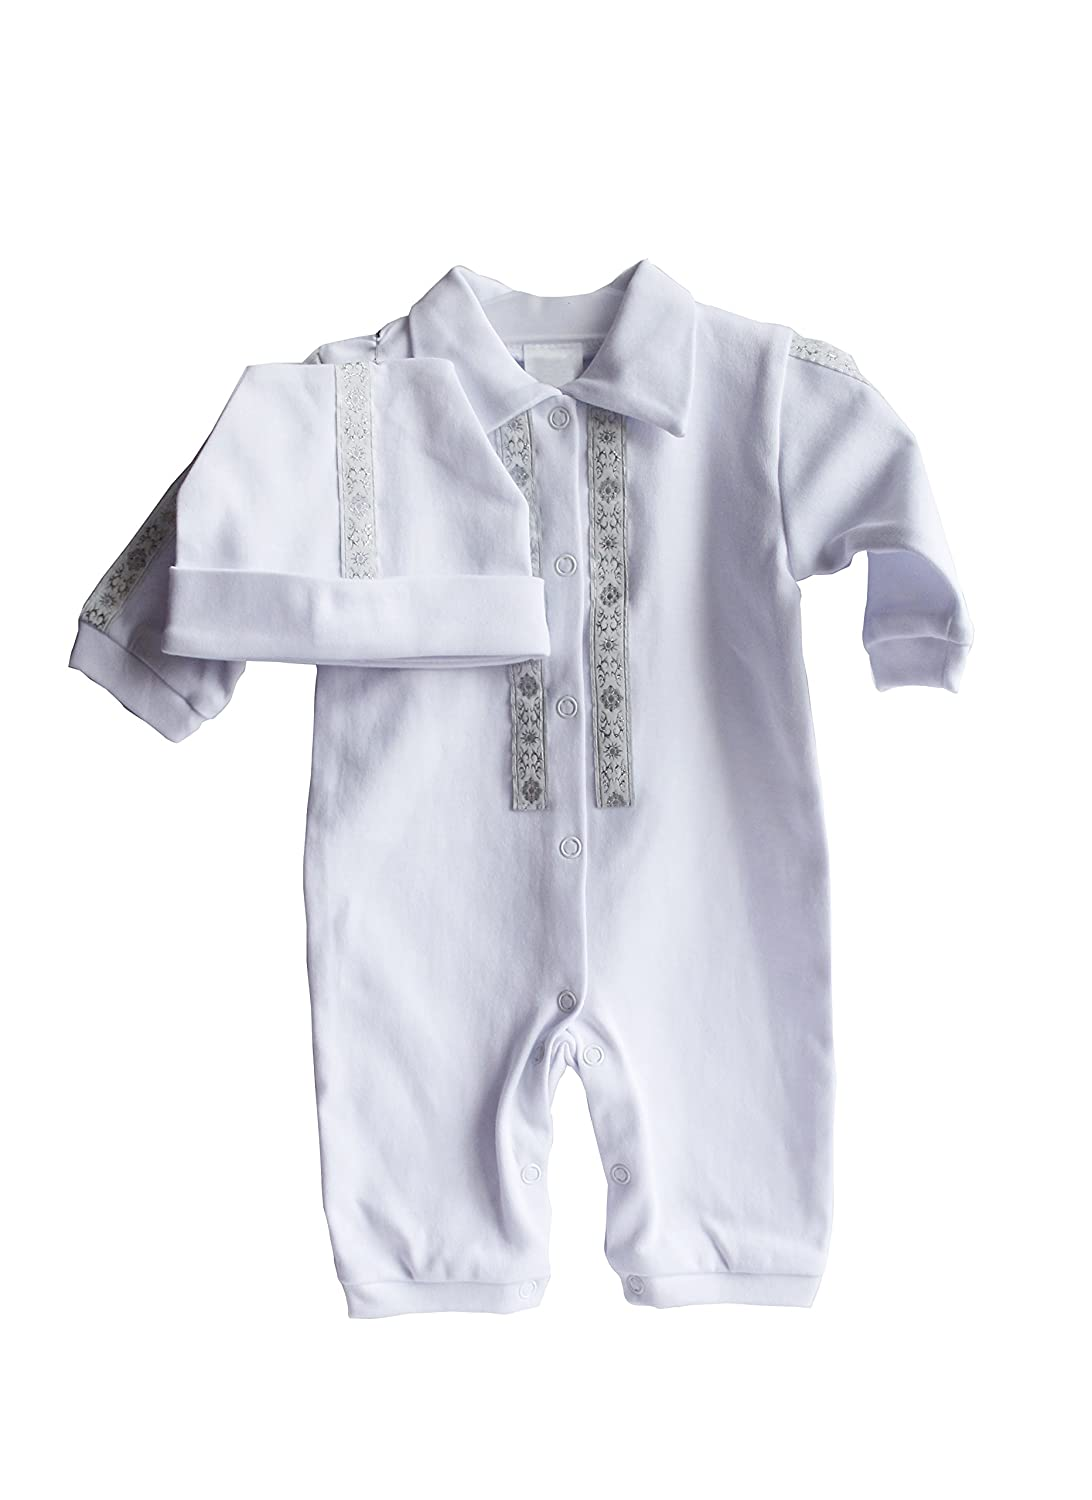 Christening Baby Romper Handmade Infant Toddler Outfit White Bodysuit 2PCS Suit Three Snails